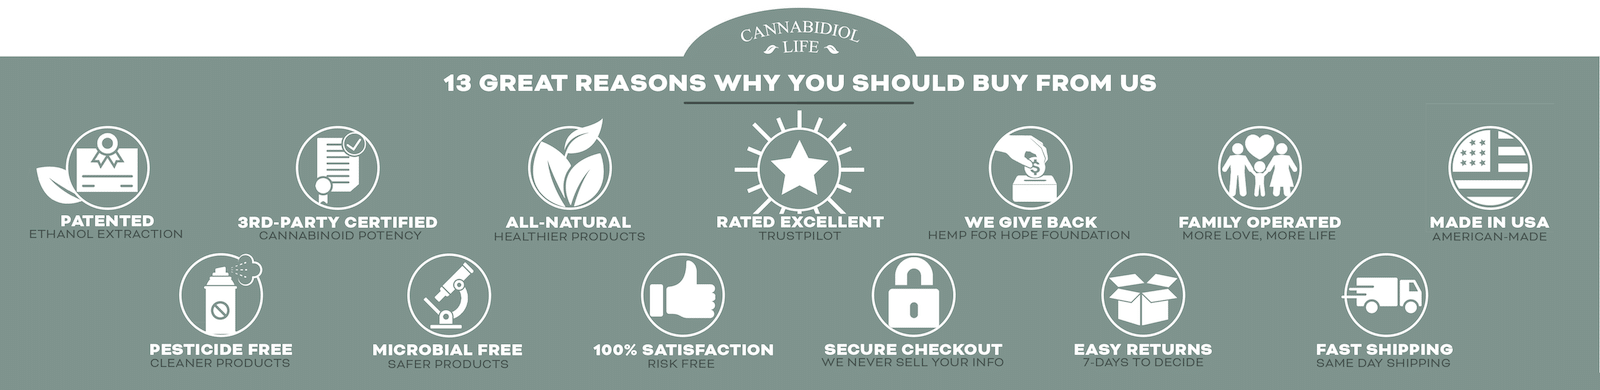 13 Great Reasons Why You Should Buy From Us